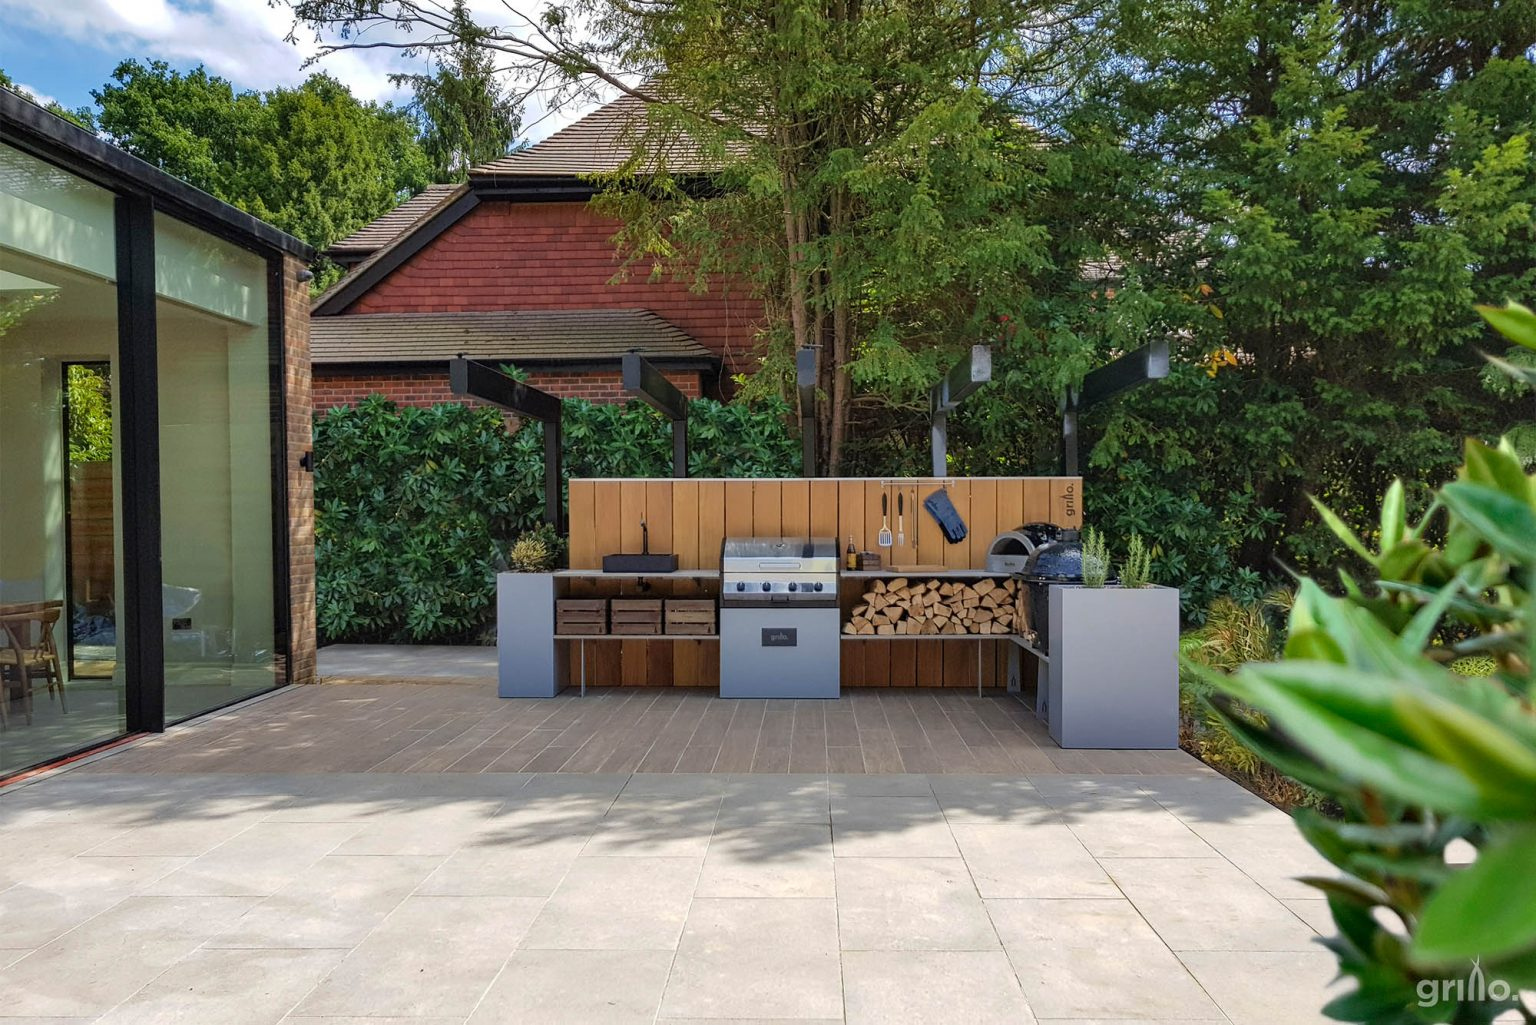 L shaped Grillo kitchen with Delivita, gas BBQ, storage crates logs, sink, planters and Primo